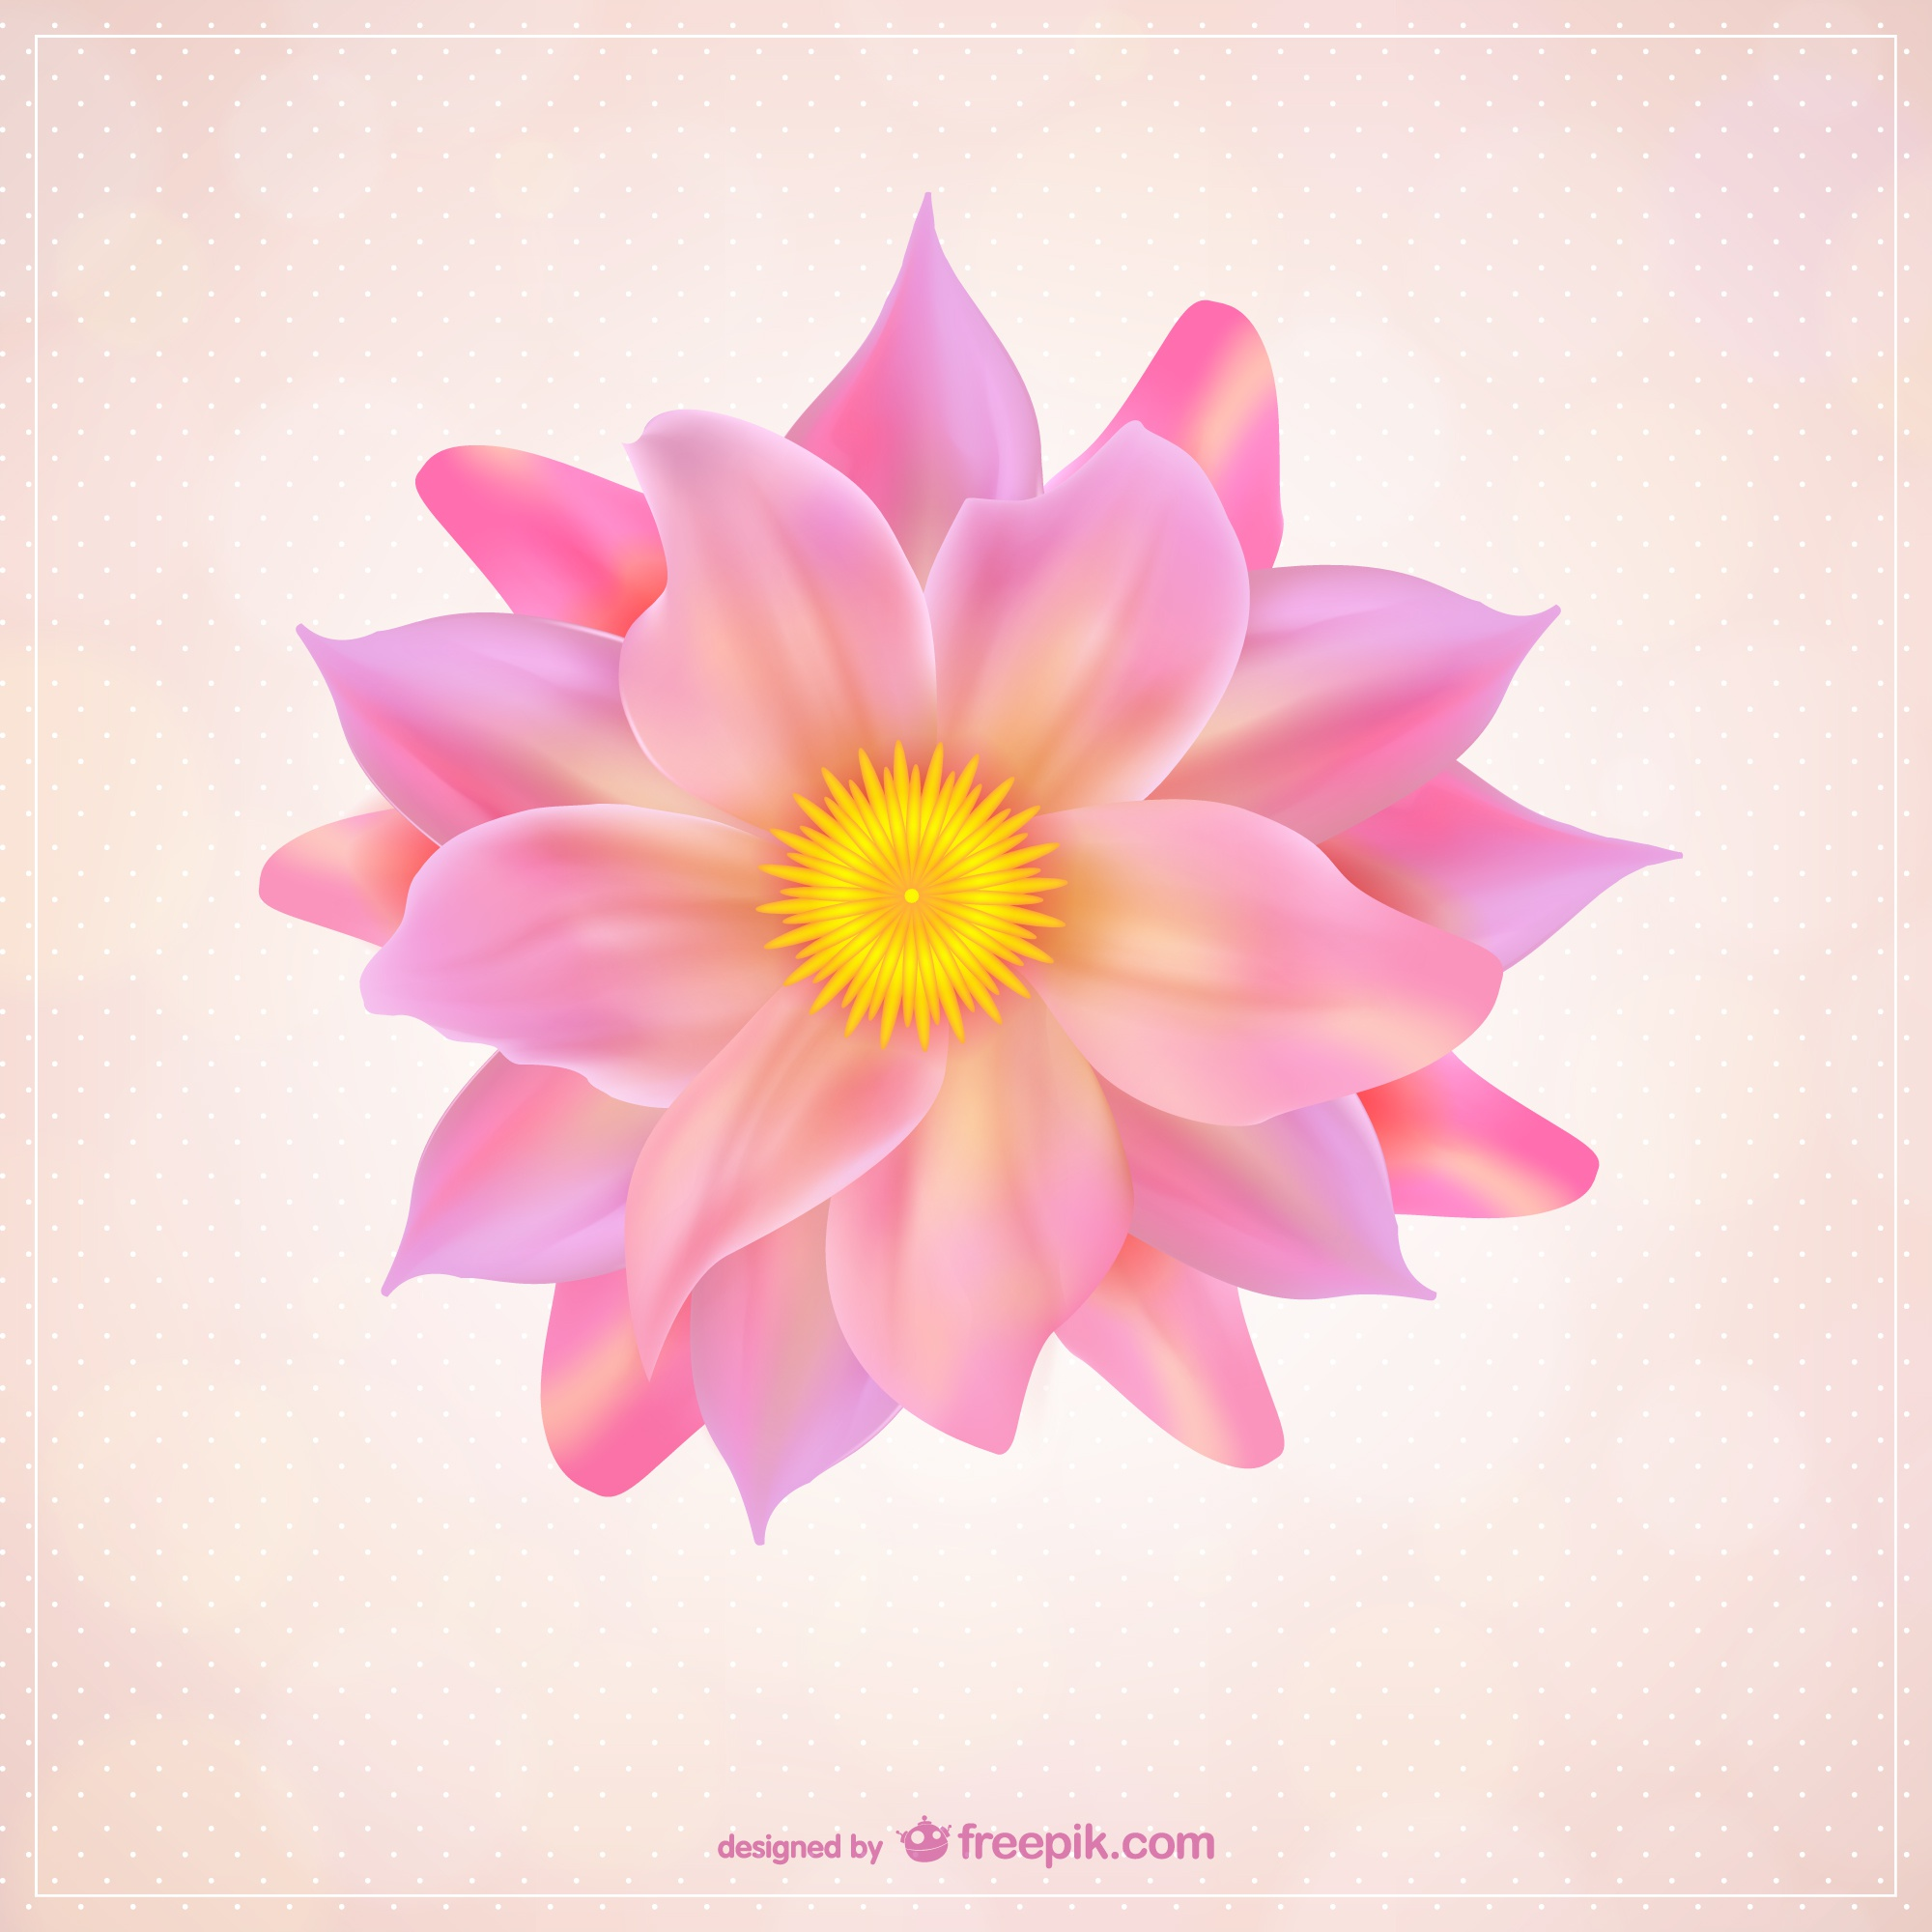 Flower with pink petals free vector